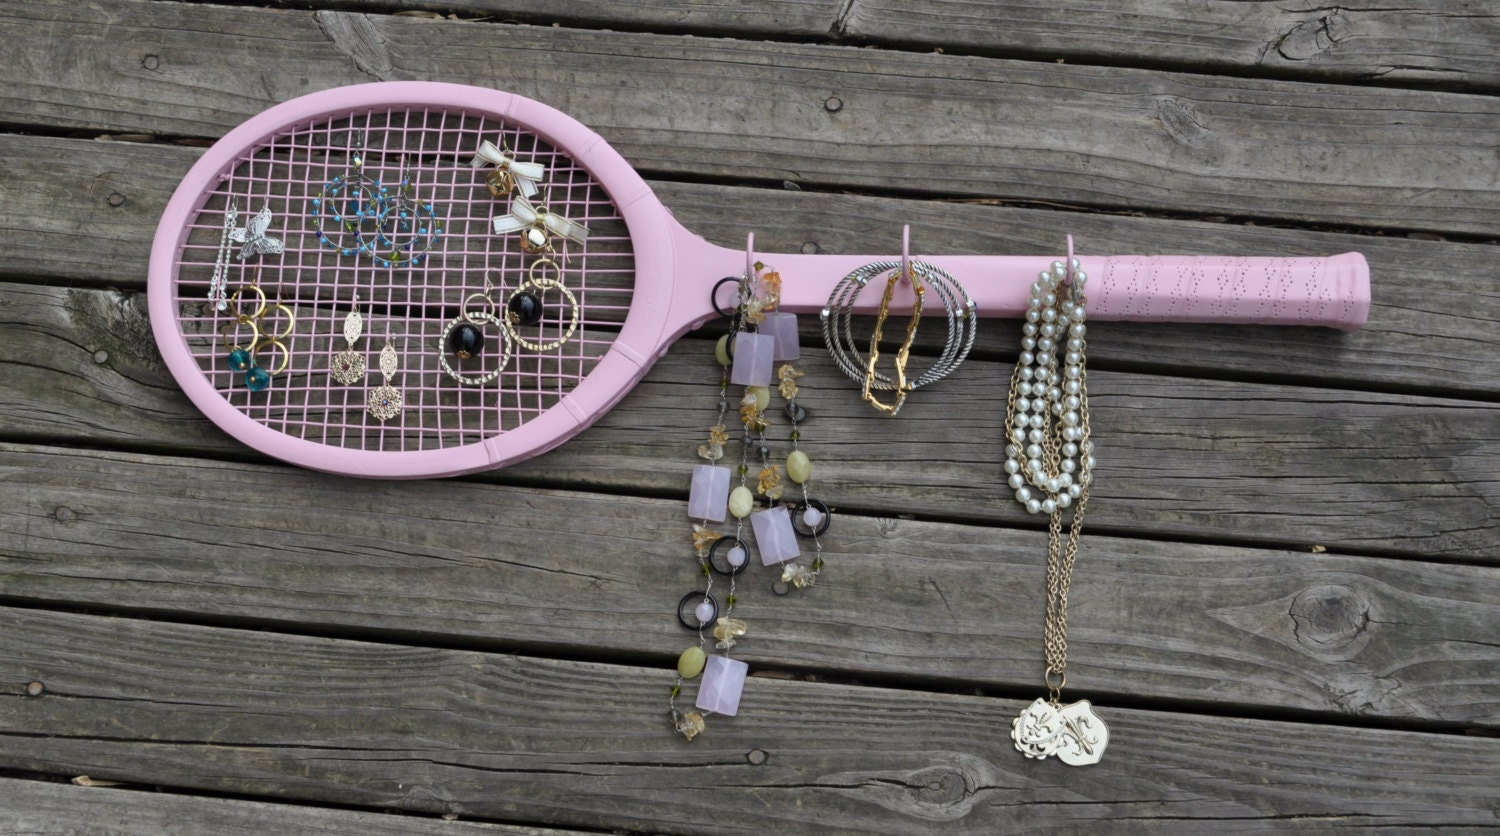 Retro Wooden Tennis Racket Jewelry Storage